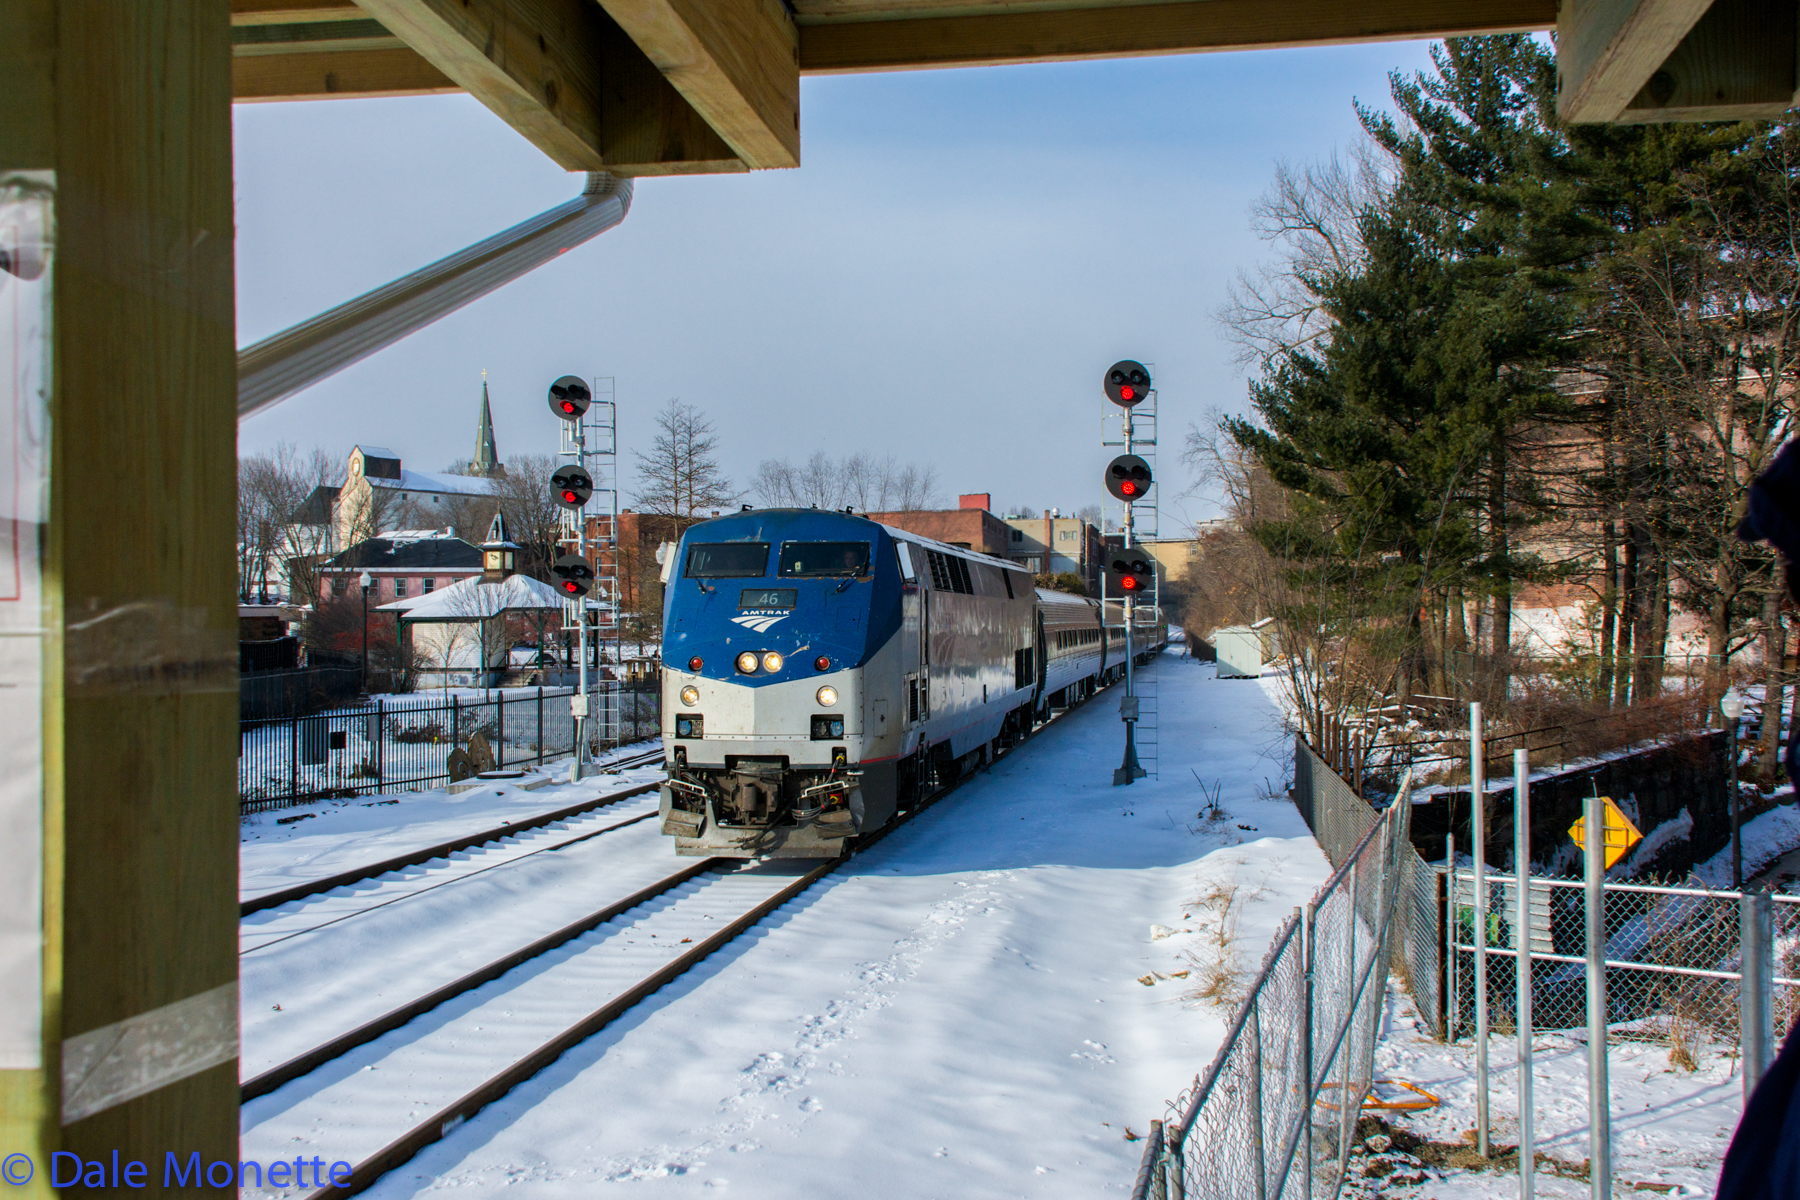 Amtrak Vermonter through Greenfield MA, 1/15